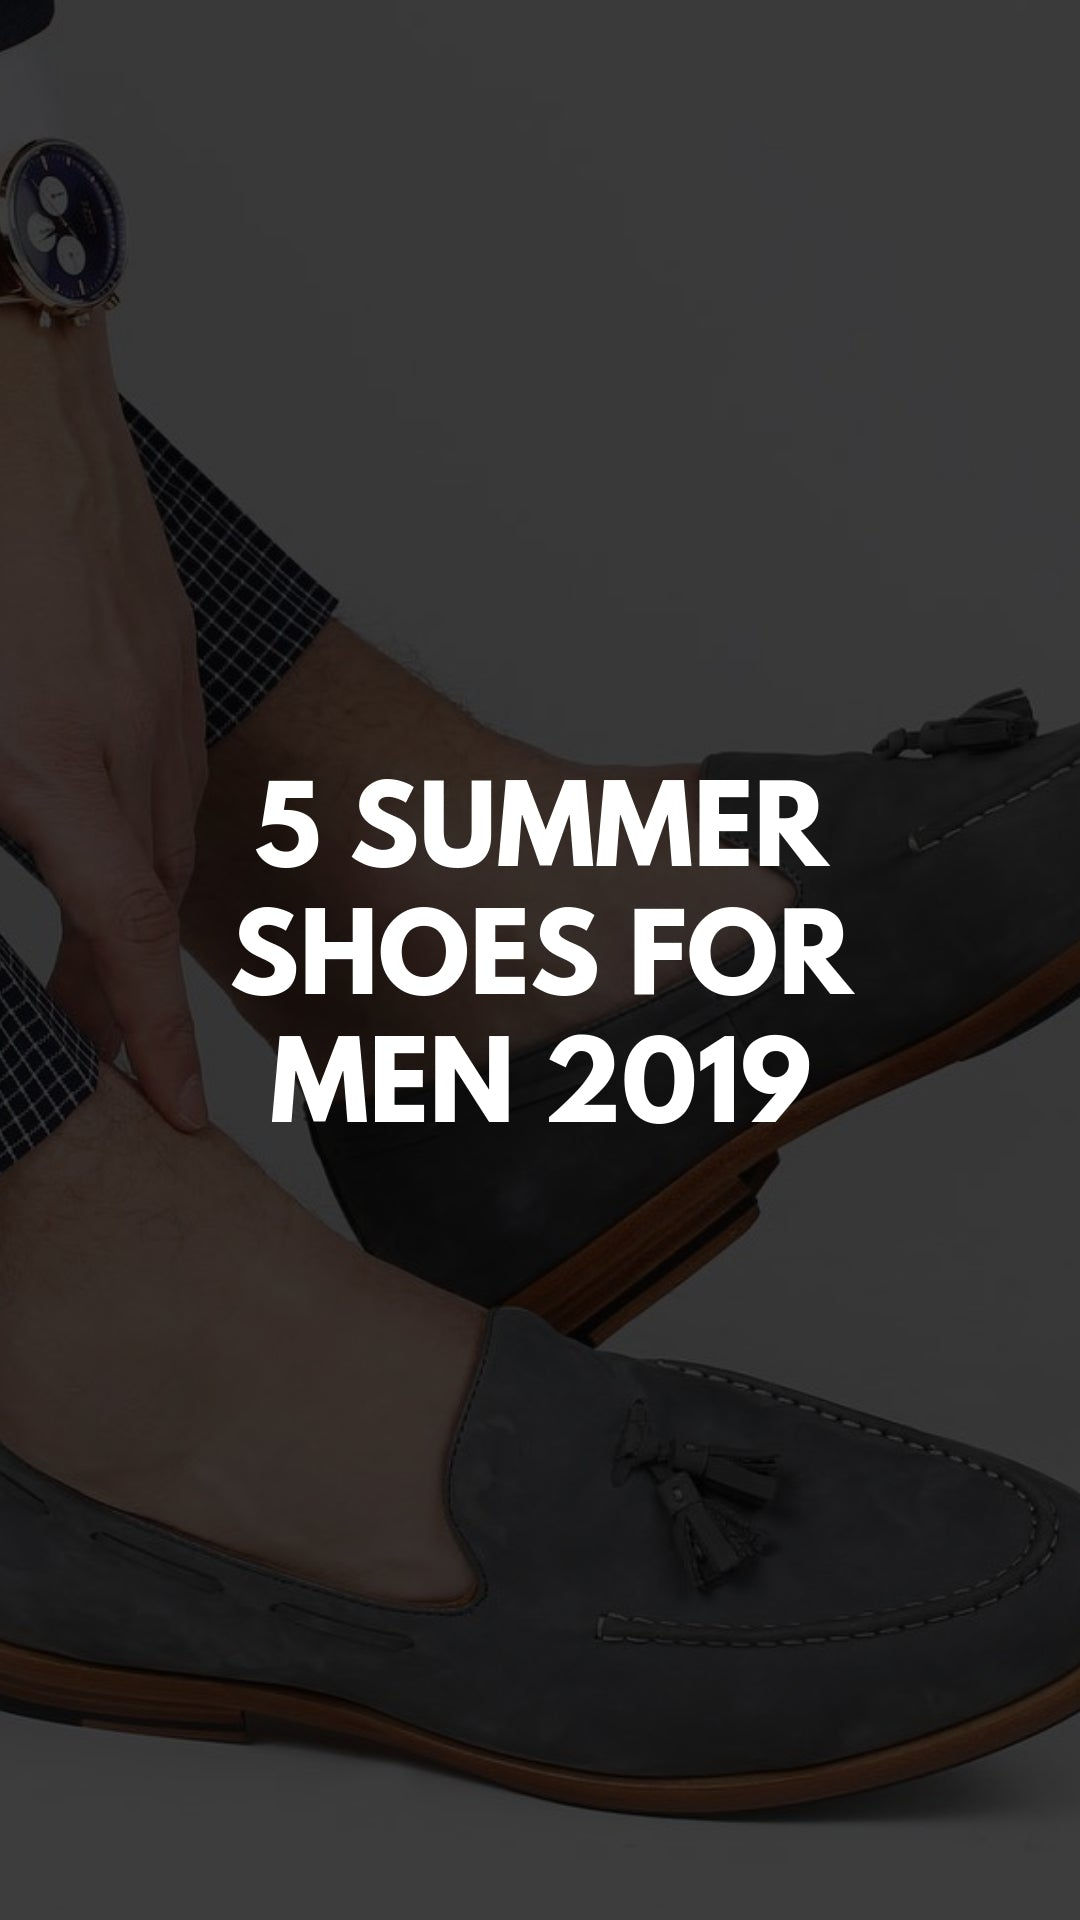 e1c7017a7d80 5 Shoes Guys Need for Summer 2019 #summer #shoes #fashiontips